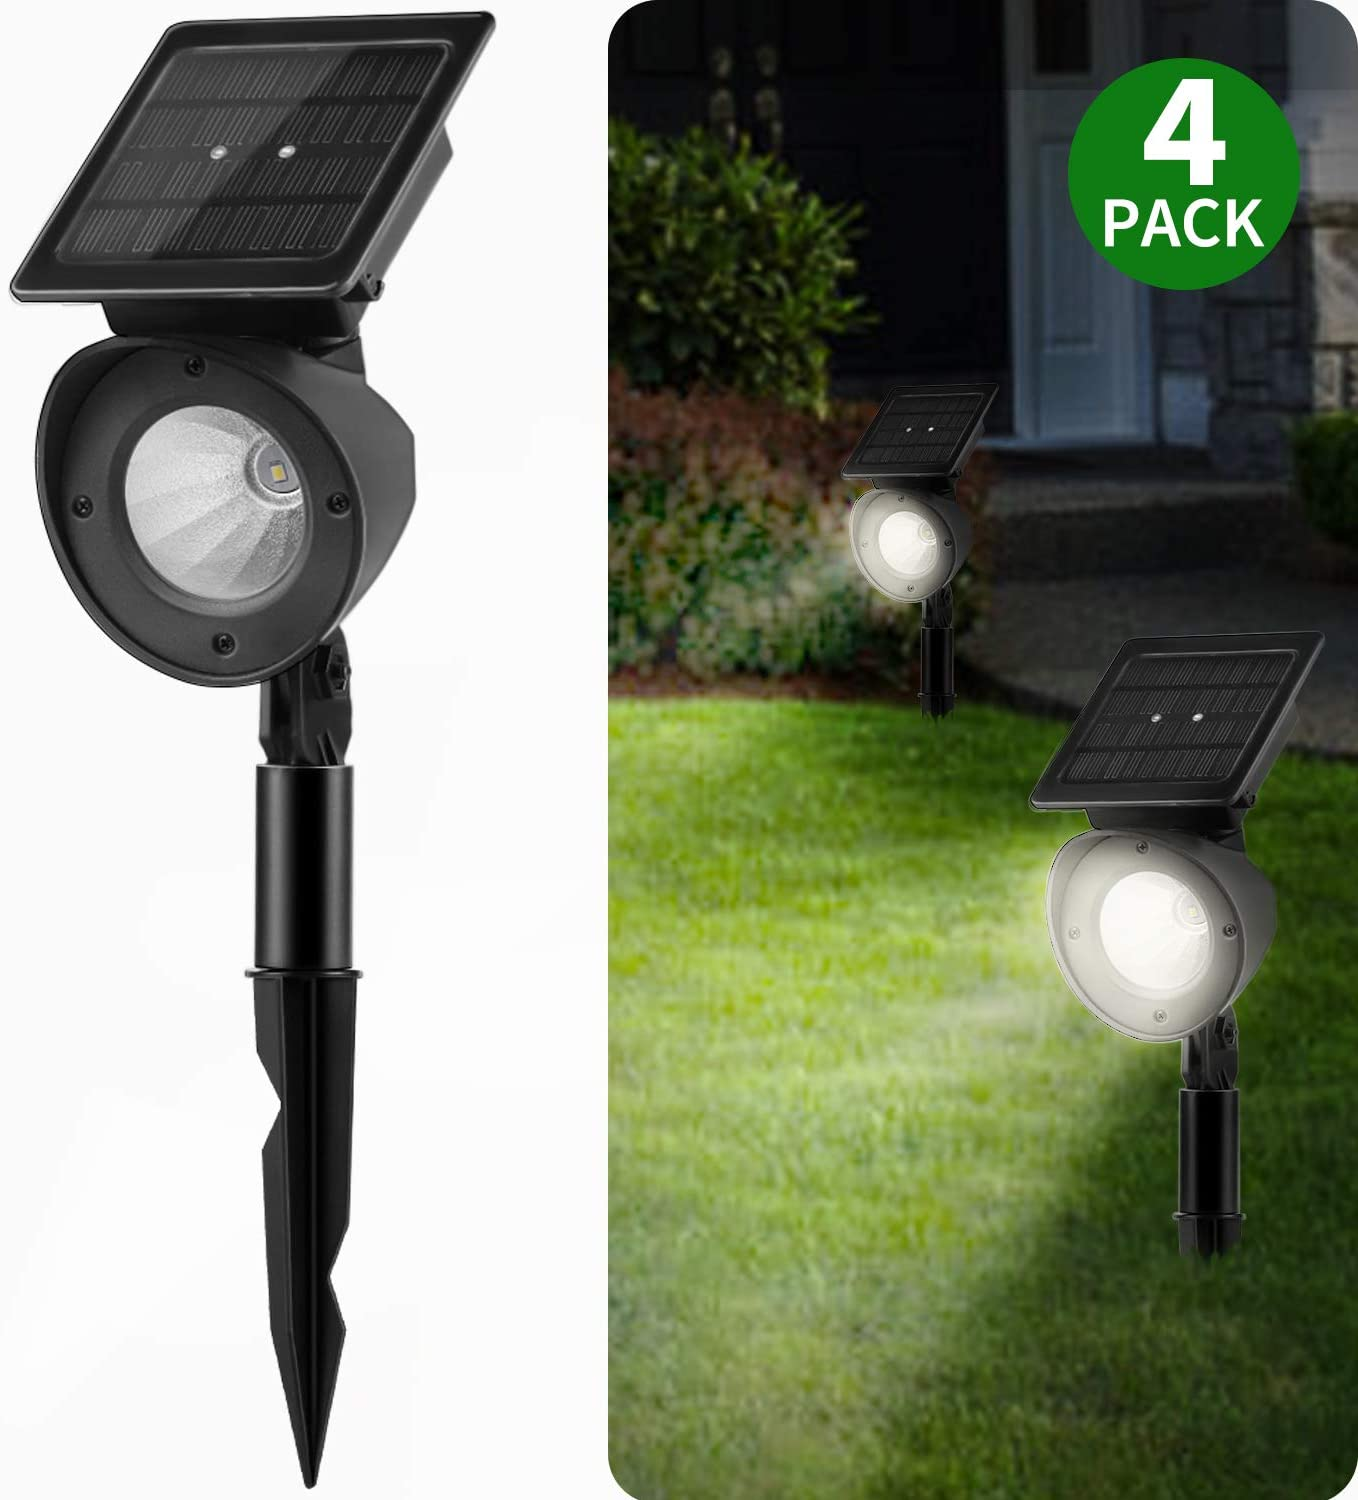 Solar Landscape Spotlights, Brightown Waterproof Adjustable Outdoor Led Spot Lights Wireless Automatic Landscaping Light for Yard Driveway Garden Pathway Lawn Walkway Pool Patio Pack of 2 - -